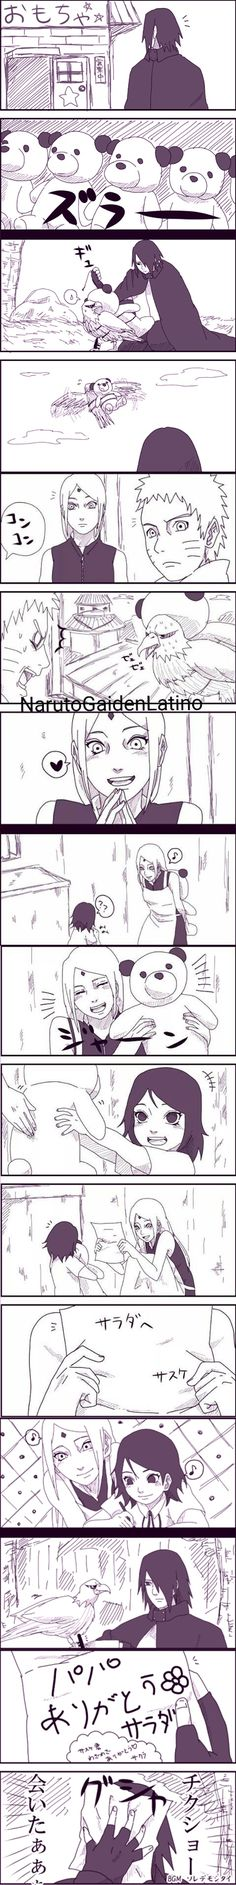 Aaahhh!! This is so freakin adorable!! Sakura, Sarada, and Sasuke are such a cute family. I know that Sarada thinks Sakura isn't her real mother but I hope the movie changes that or can someone please spoil some stuff to me!! I need to know what's happening